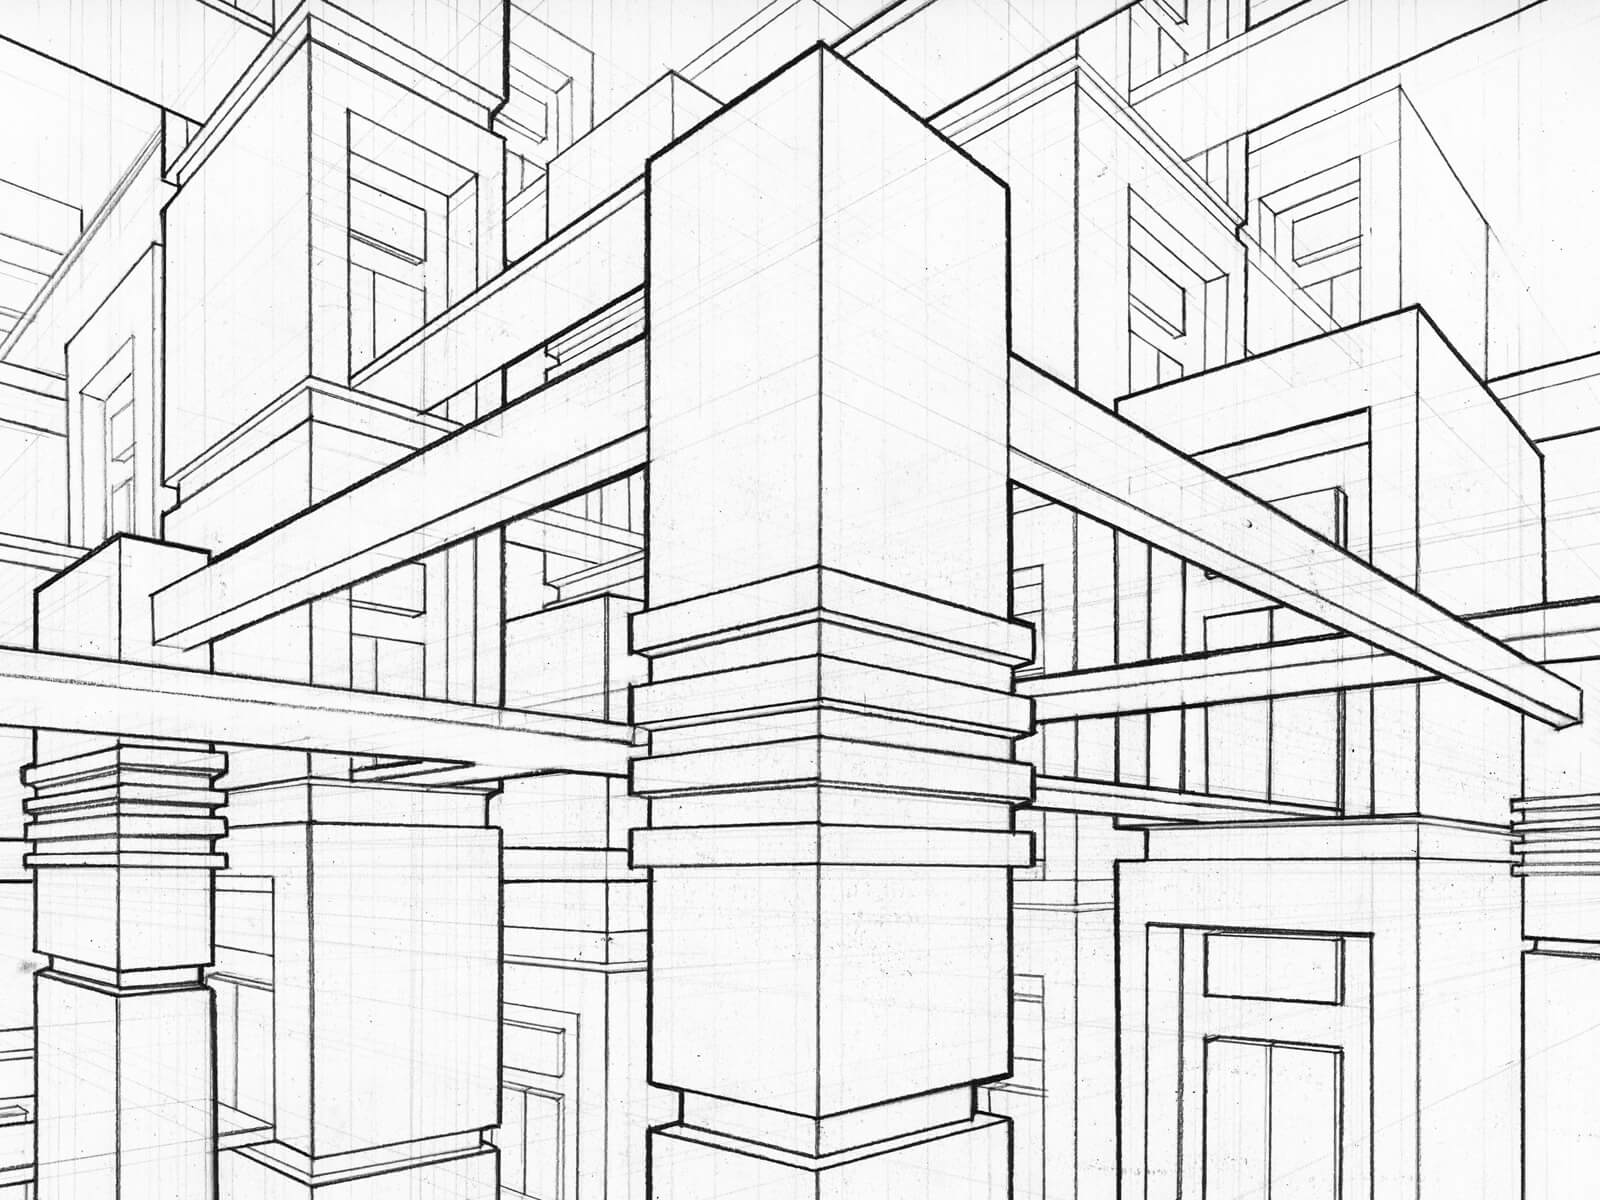 black and white perspective drawing of pillars and beams